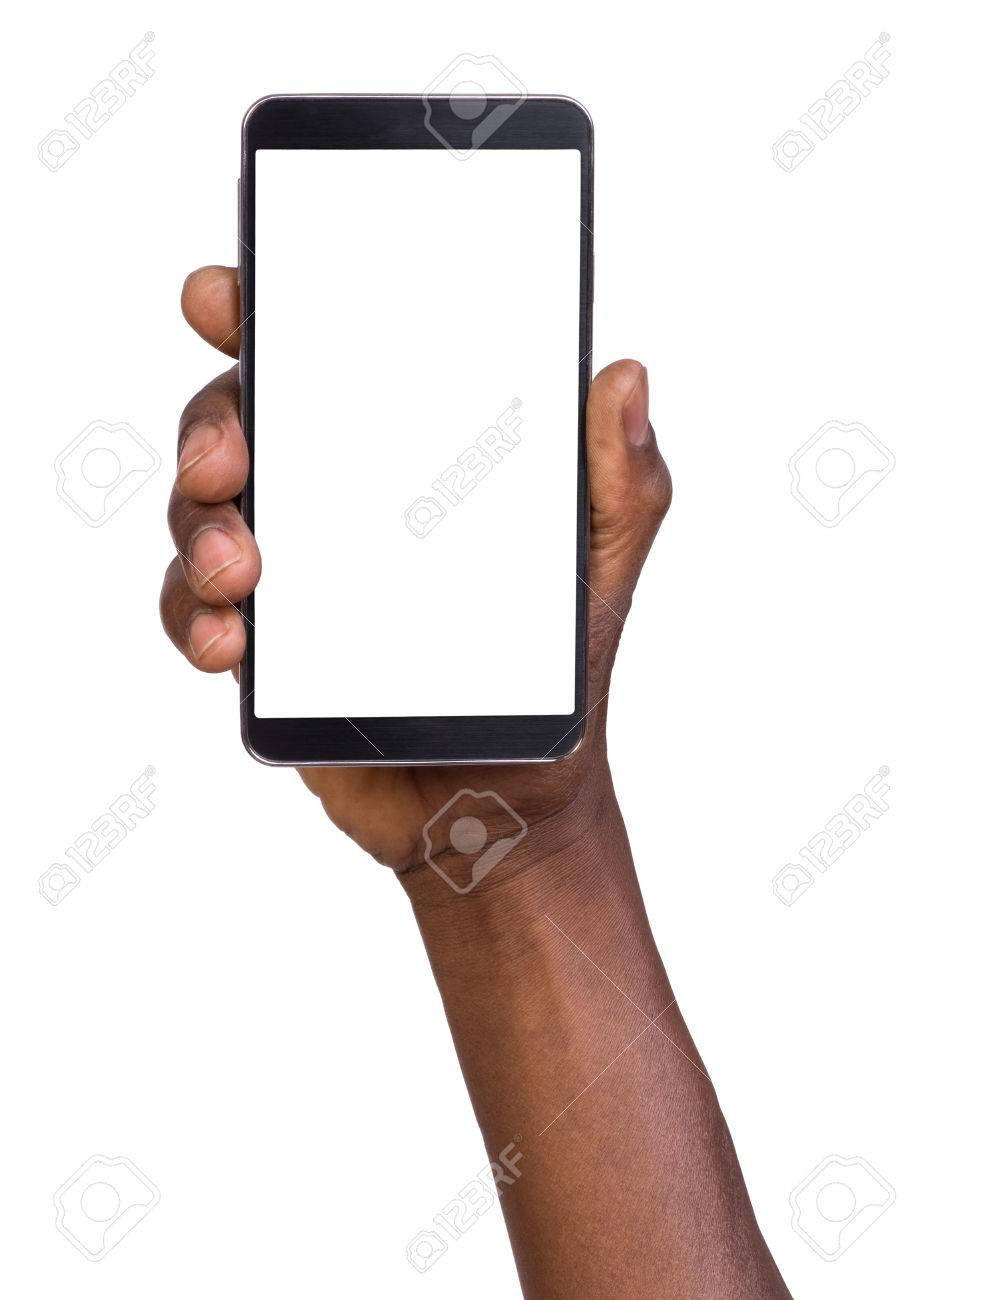 Hand holding mobile smart phone with blank screen - 32750750